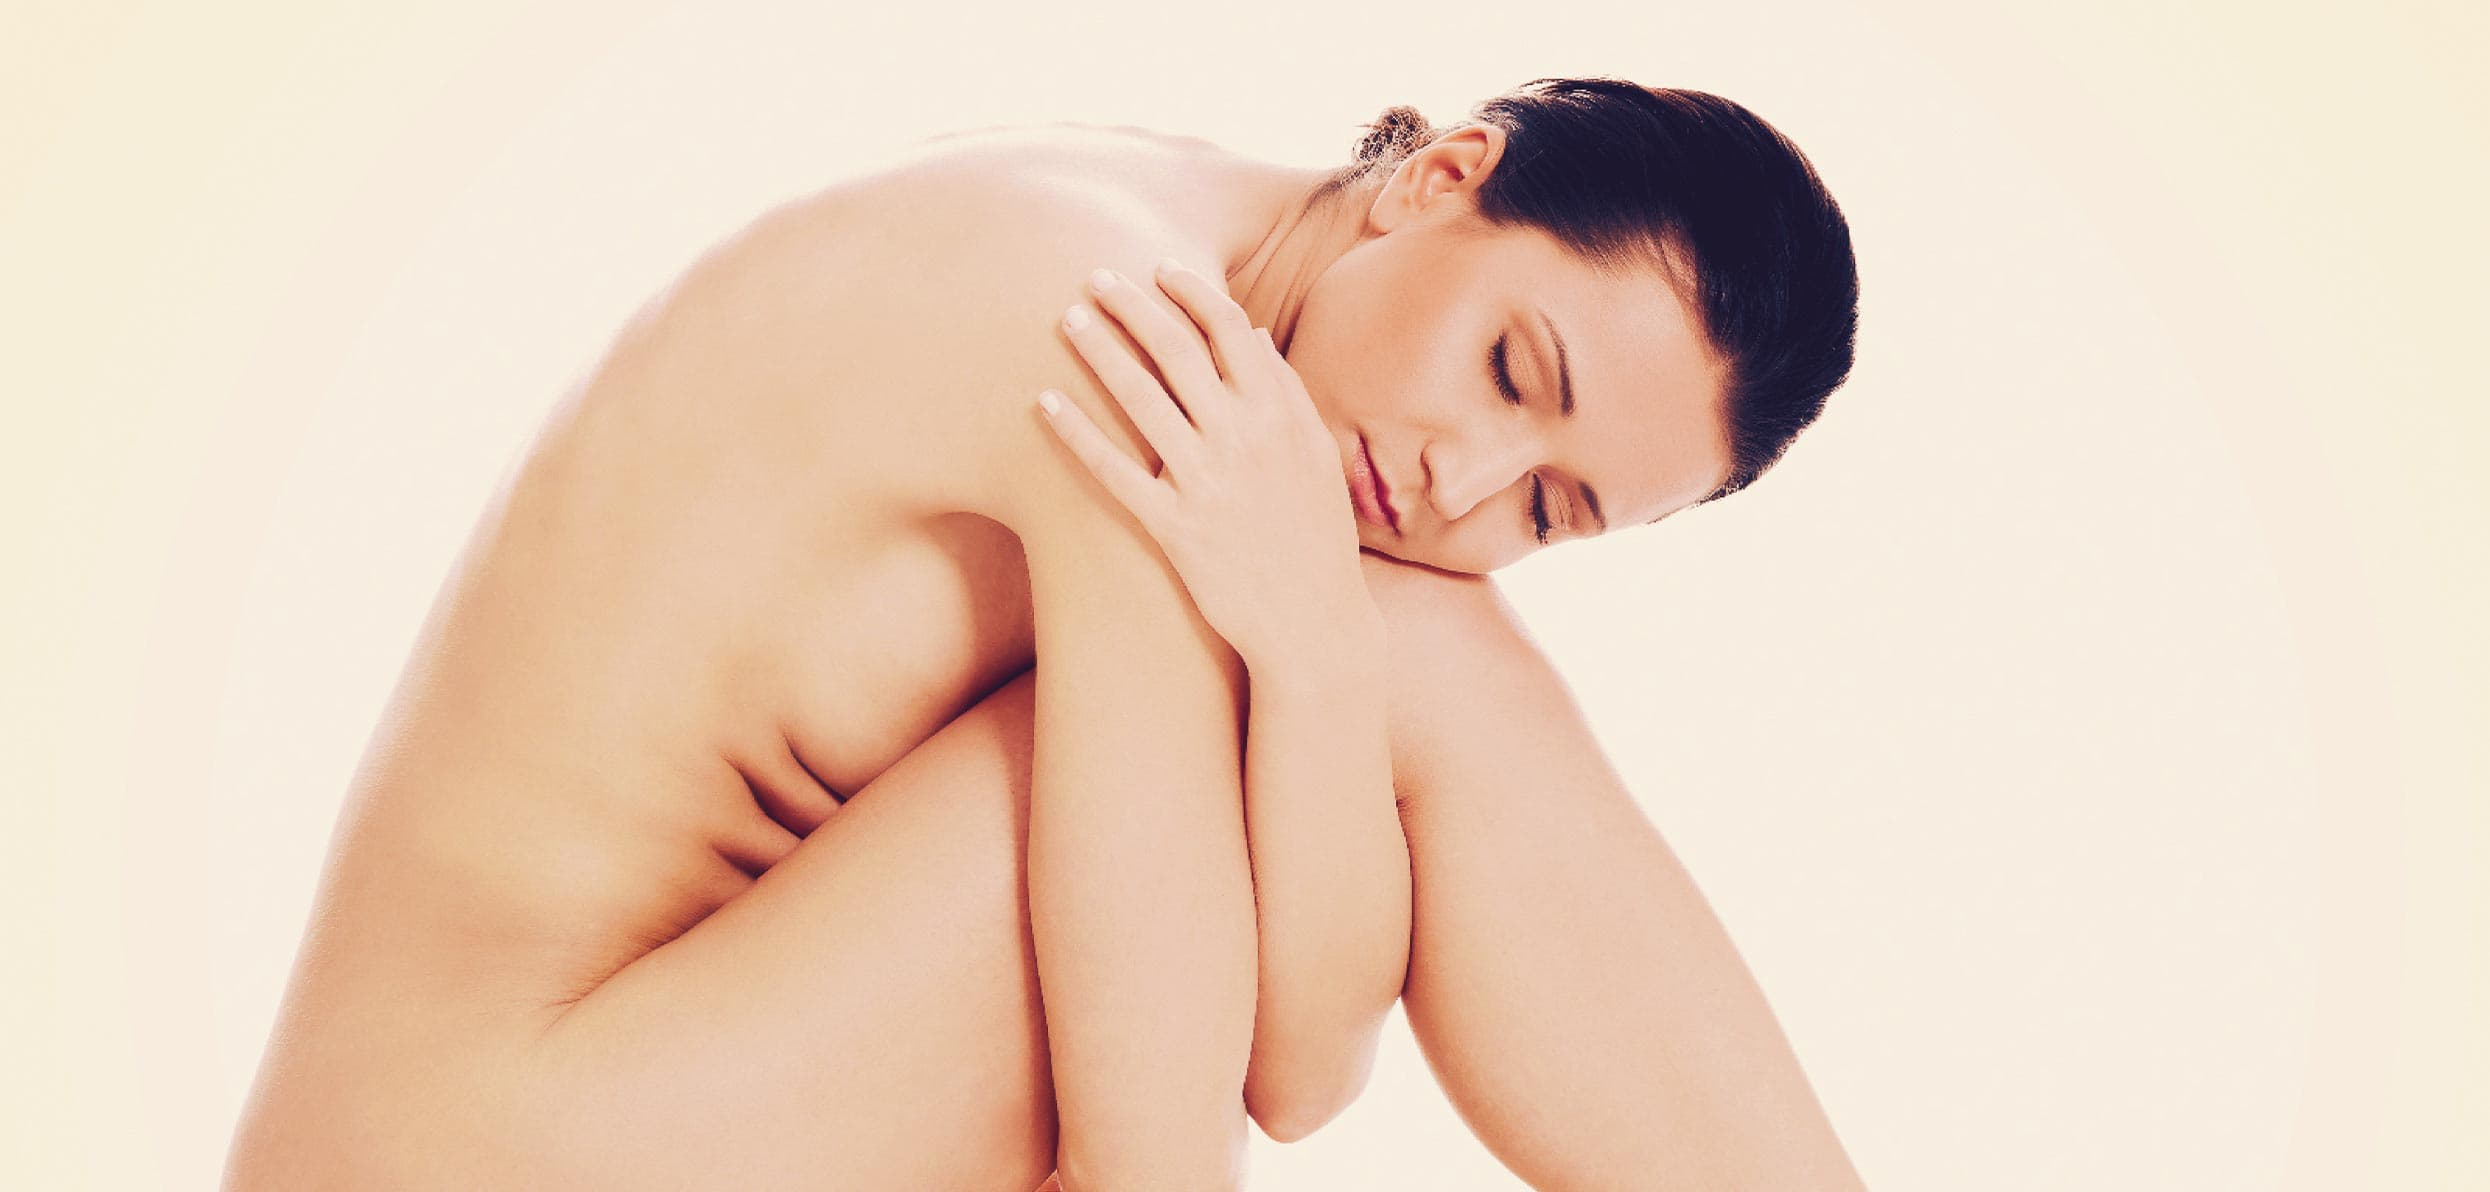 Naked woman sitting in a fetal position while hugging her thighs - prevention of osteoporosis